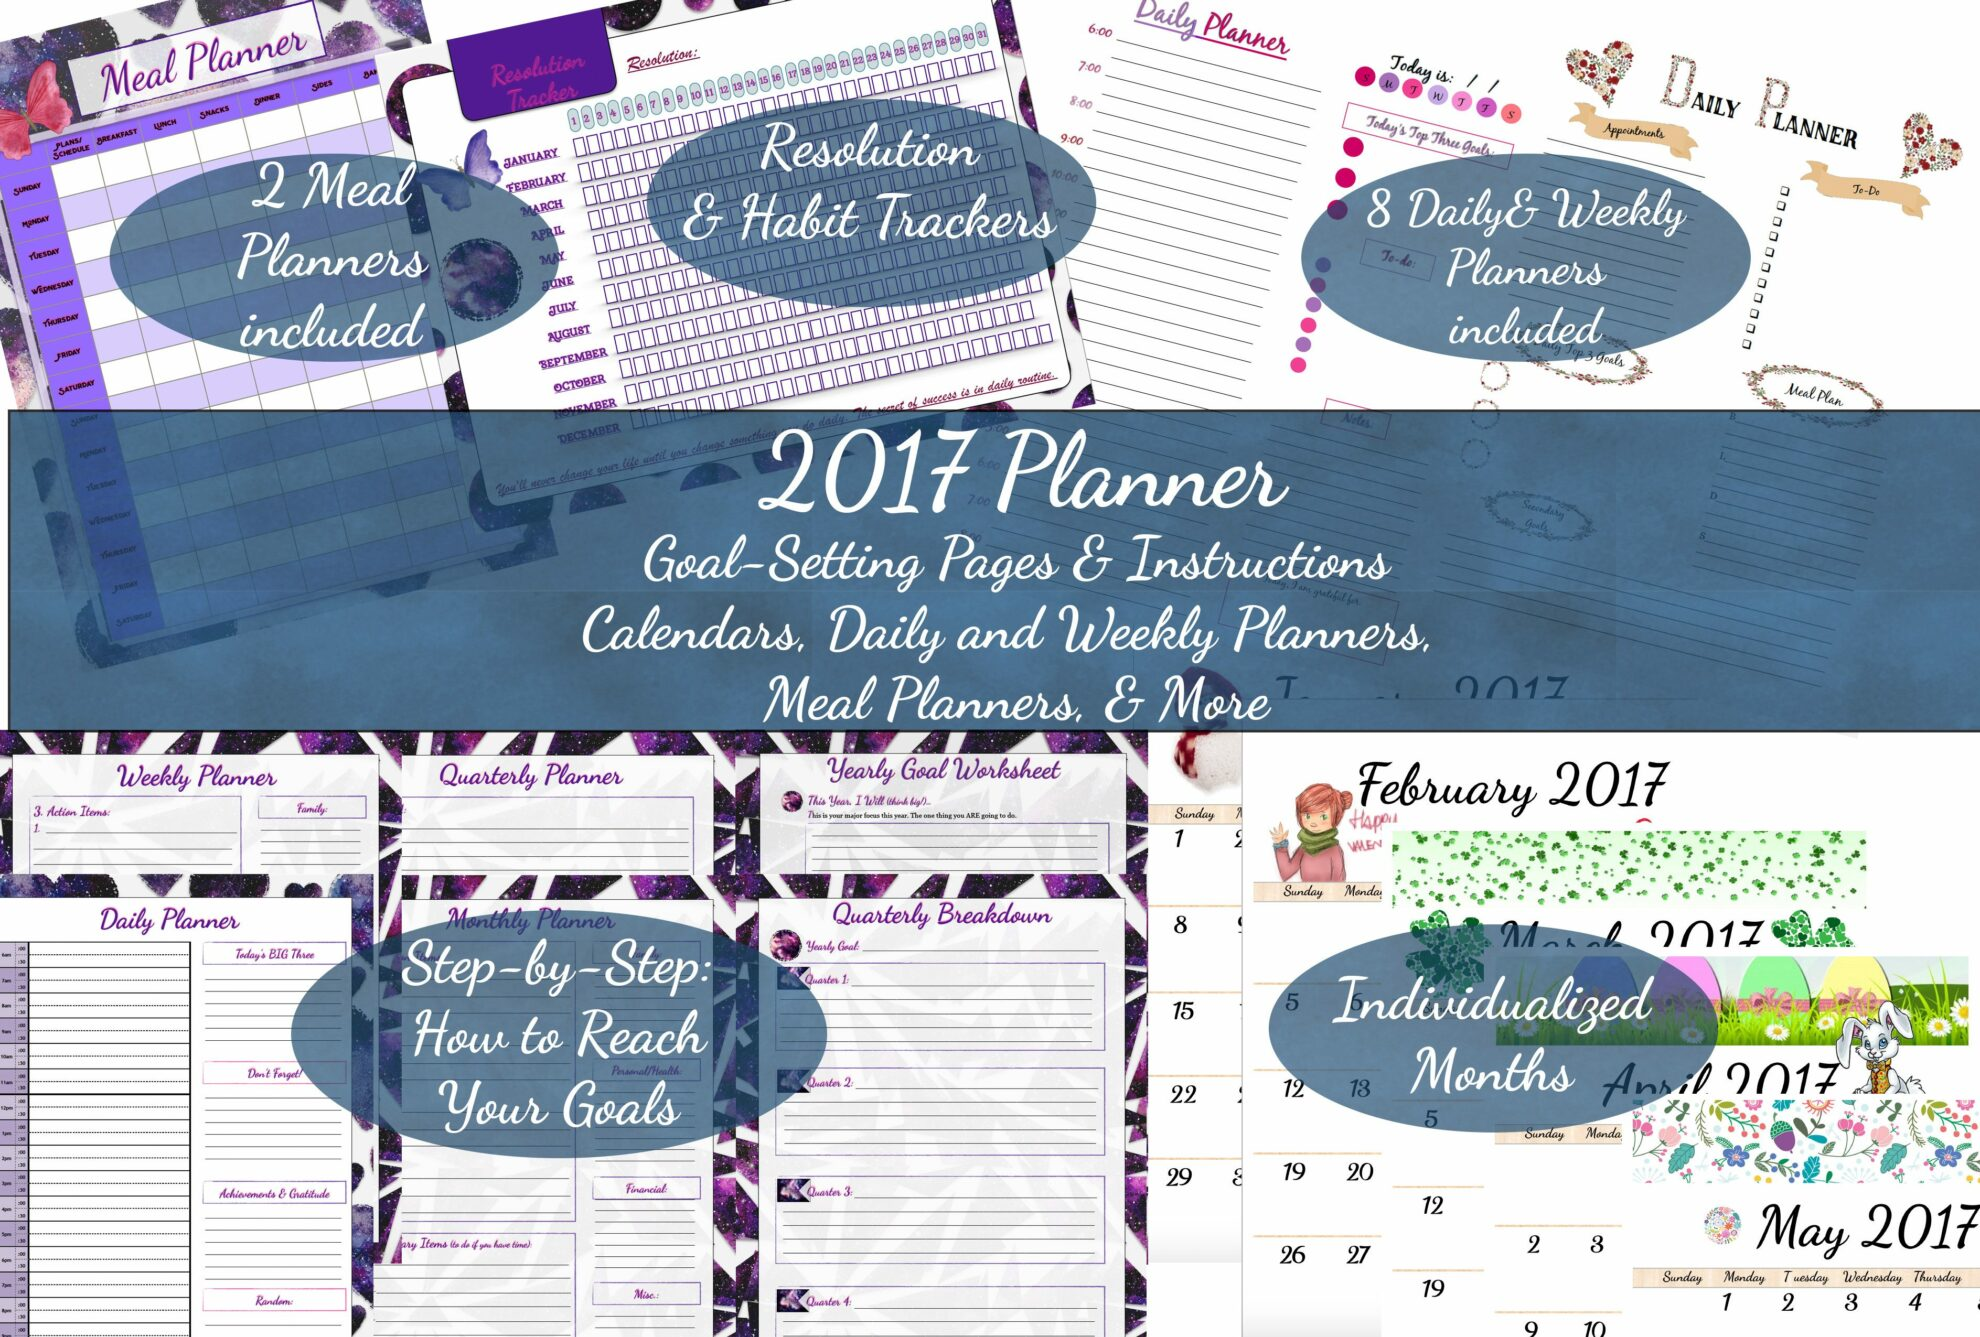 Free 2017 Printable Planner! Make 2017 the year you get control of your life and schedule...for good. Goal-setting planners: yearly, quarterly, monthly, weekly, daily. Meal planners. Calendar. Resolution & habit tracker. And more!